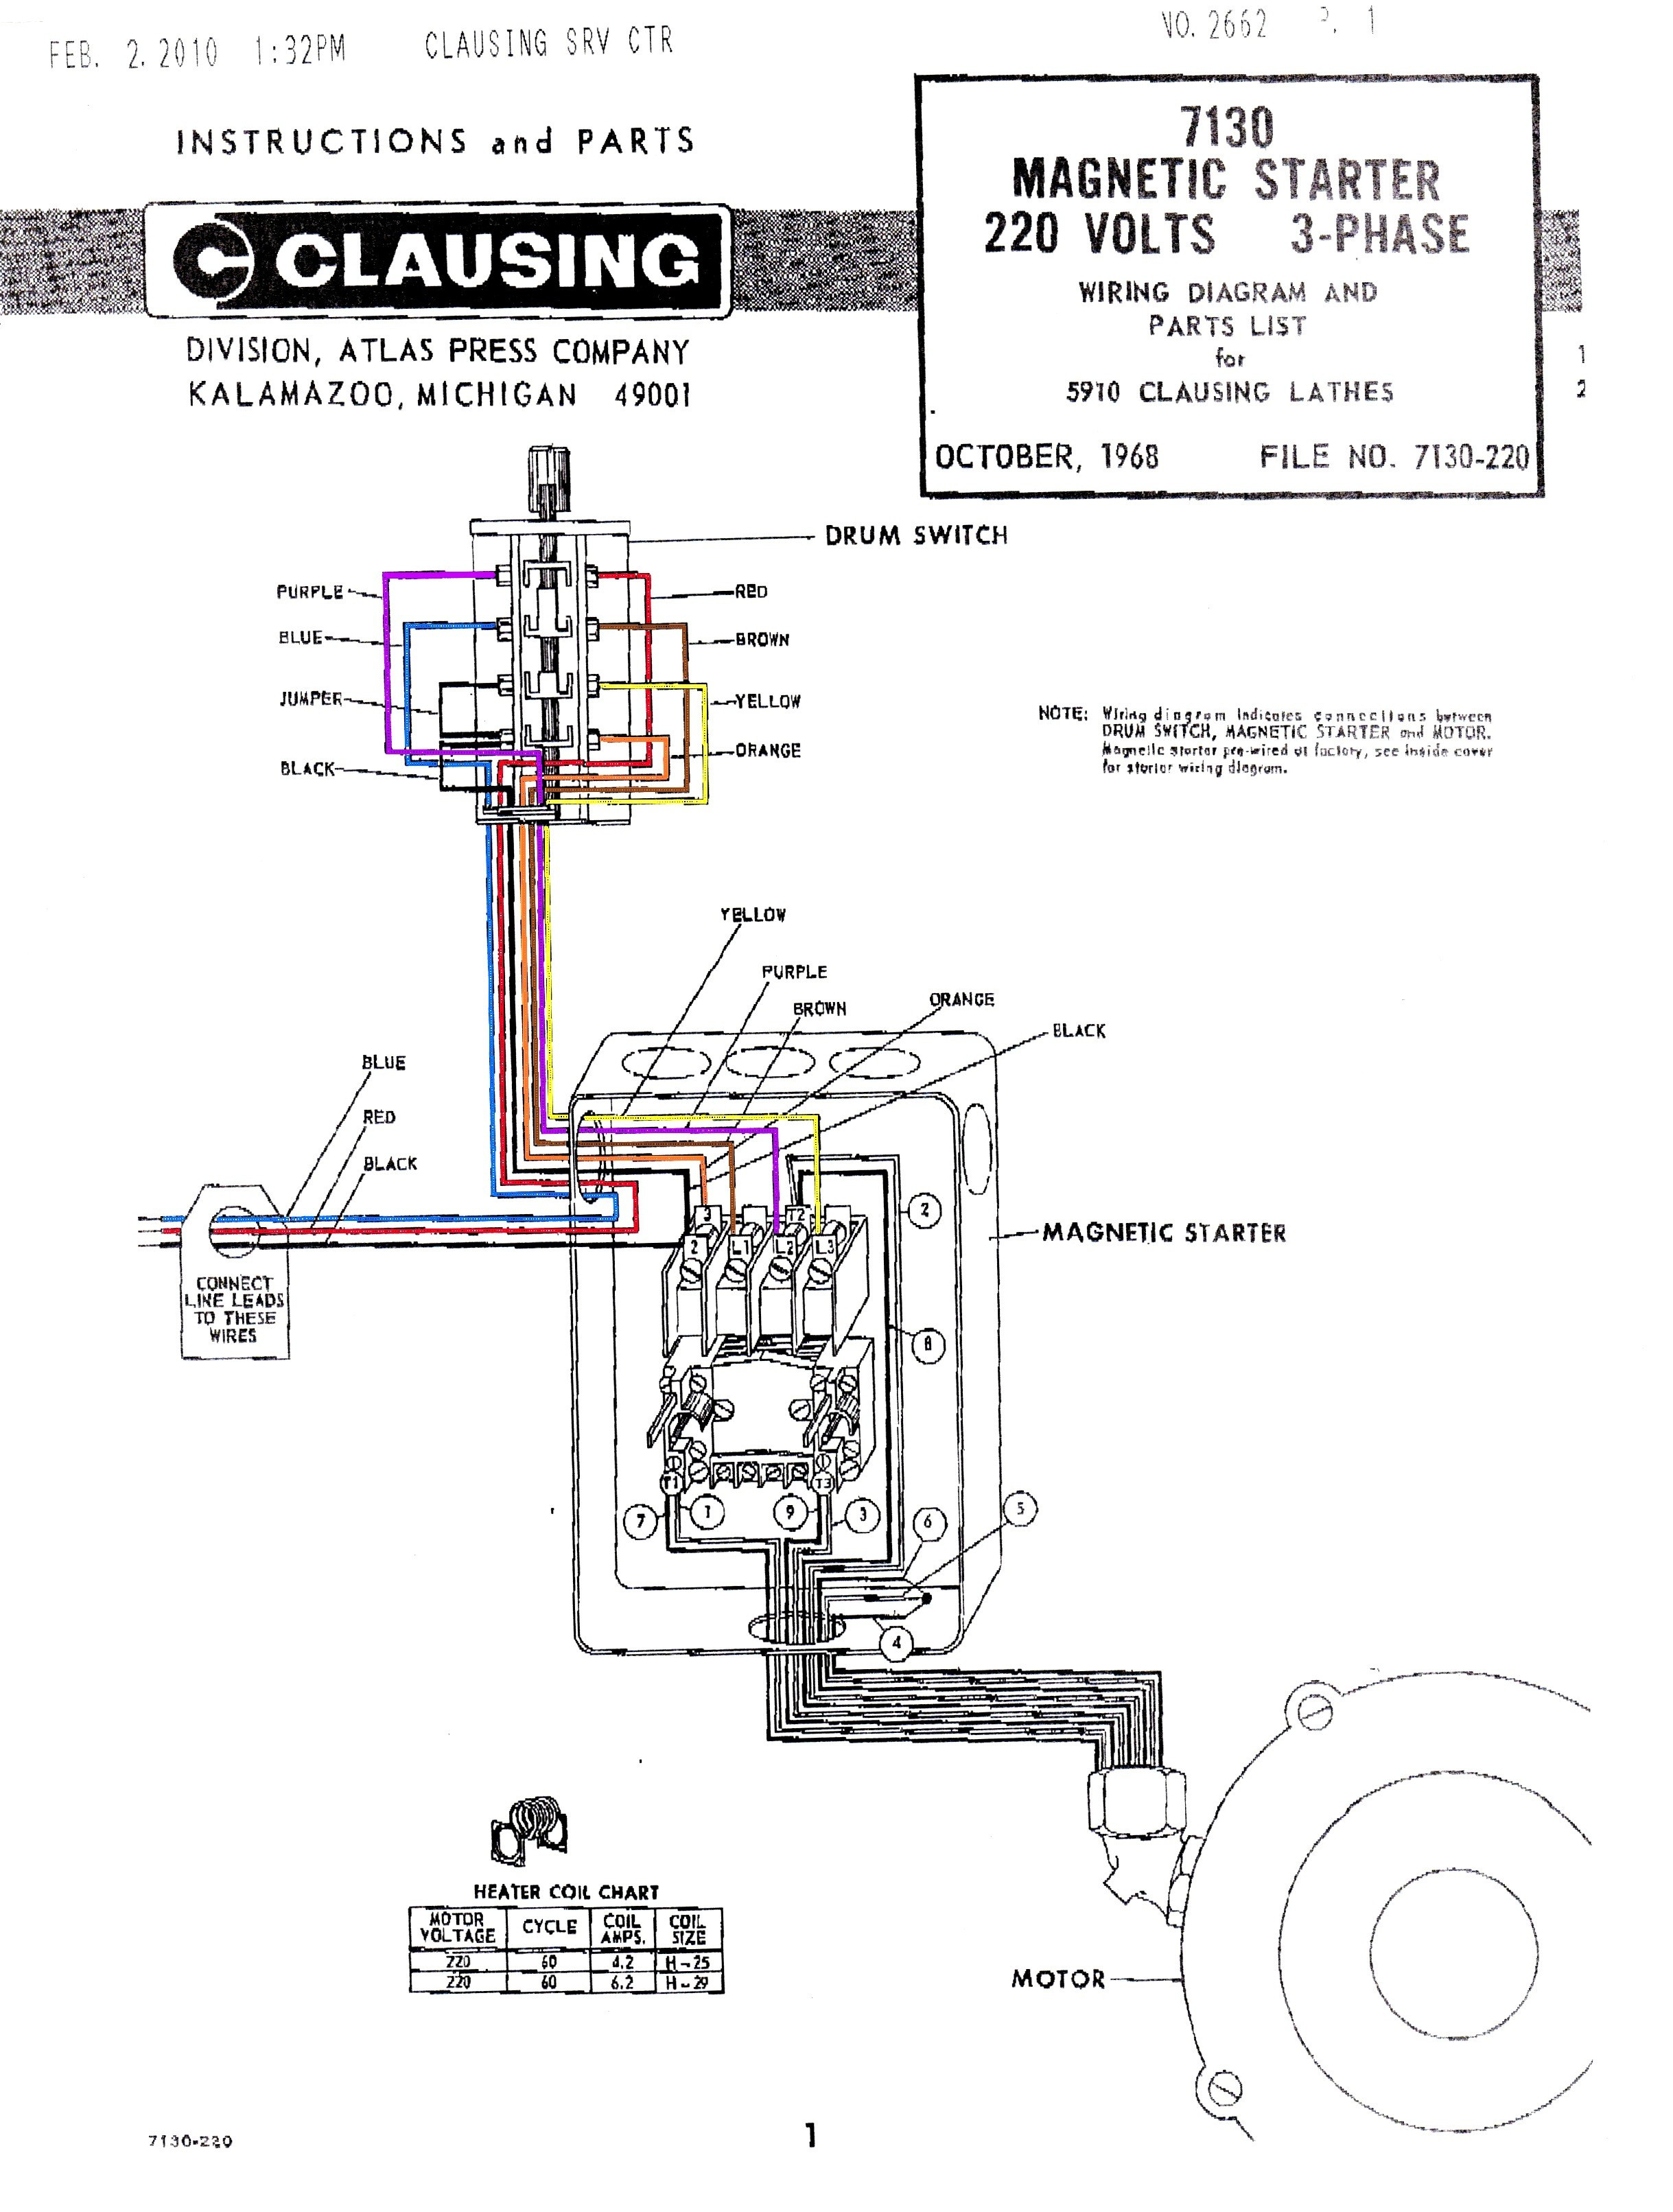 medium resolution of motor wiring diagrams free download wiring diagram schematic electric motor wiring diagram free download wiring diagram schematic